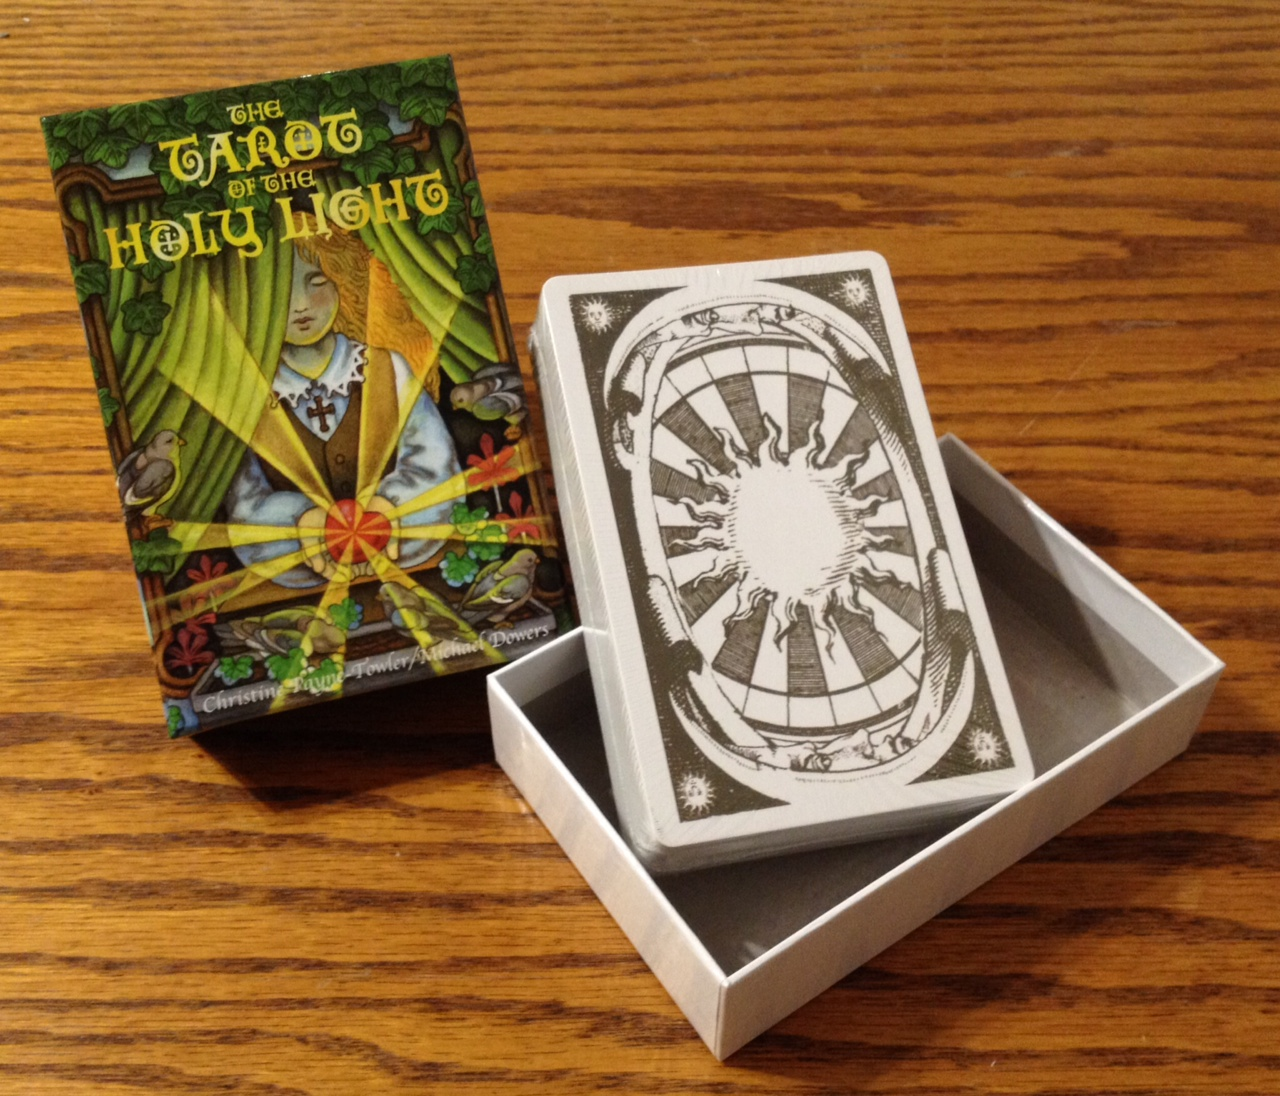 Review Of Tarot Of The Holy Light Benebell Wen